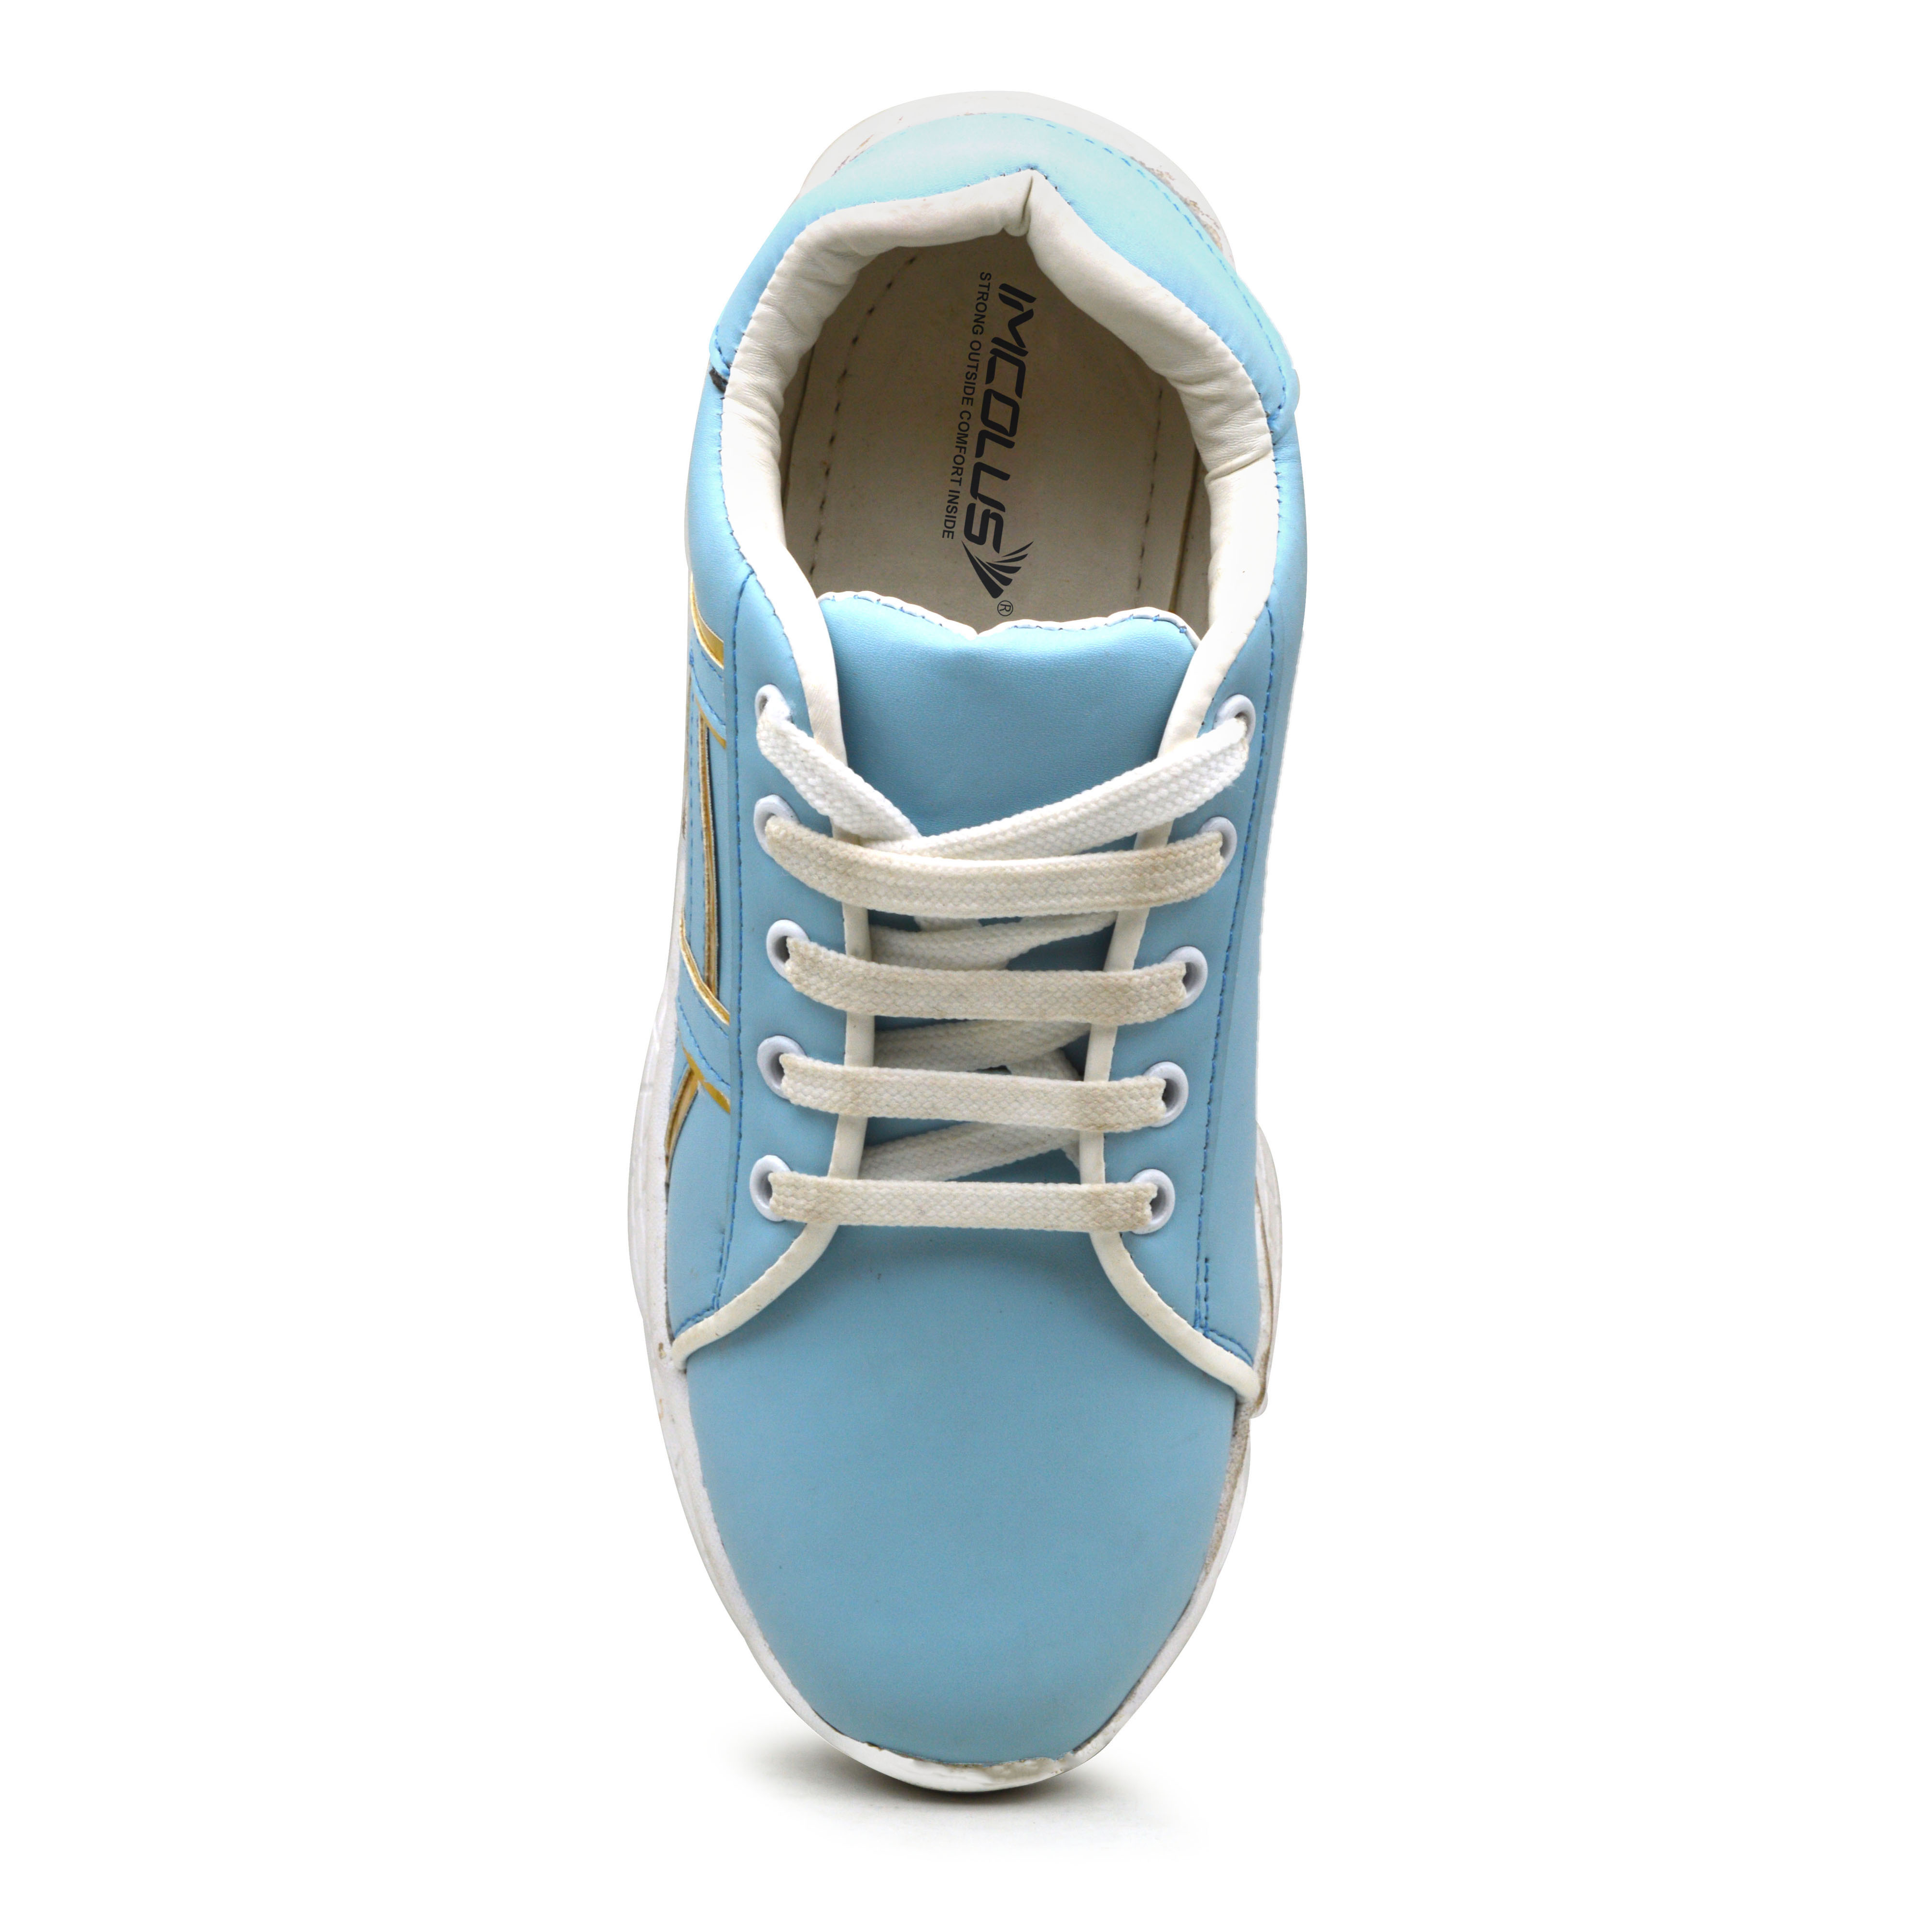 IMC439.739_SK RUNNING & COMFORTABLE GIRL'S SPORT SHOES IMC439.739_SK (SKY BLUE, 36TO41, 6 PAIRS)